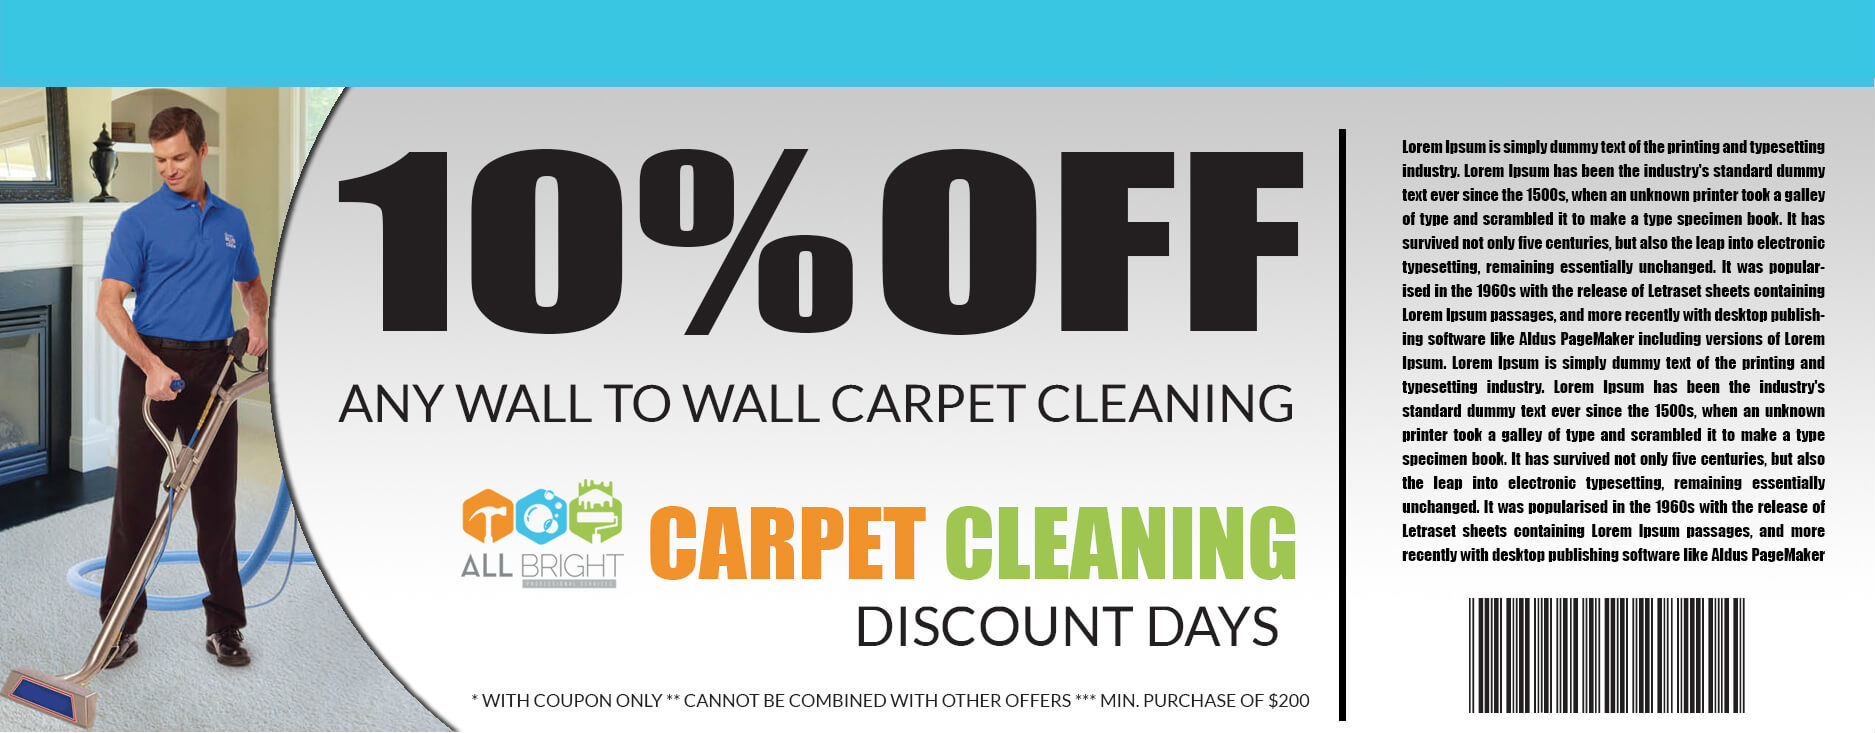 carpet-cleaning-deal